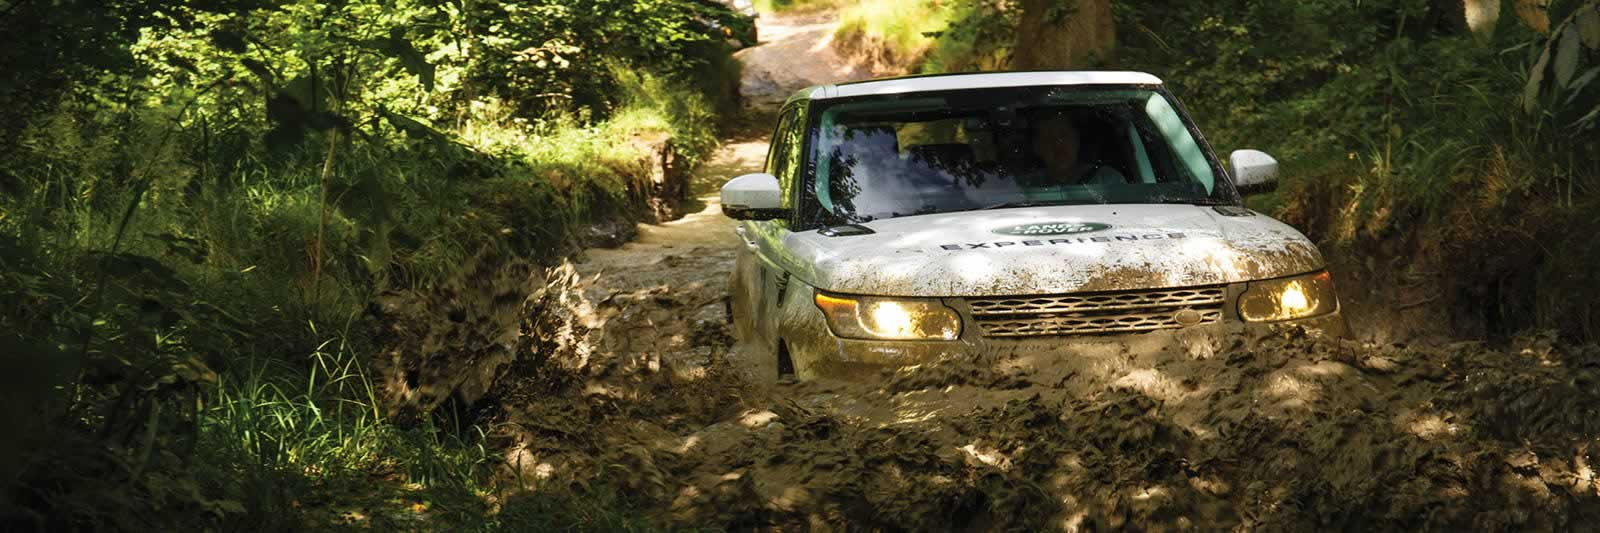 we invite our new customers to take them off-road on a complimentary Half Day Land Rover Experience.<br><br>